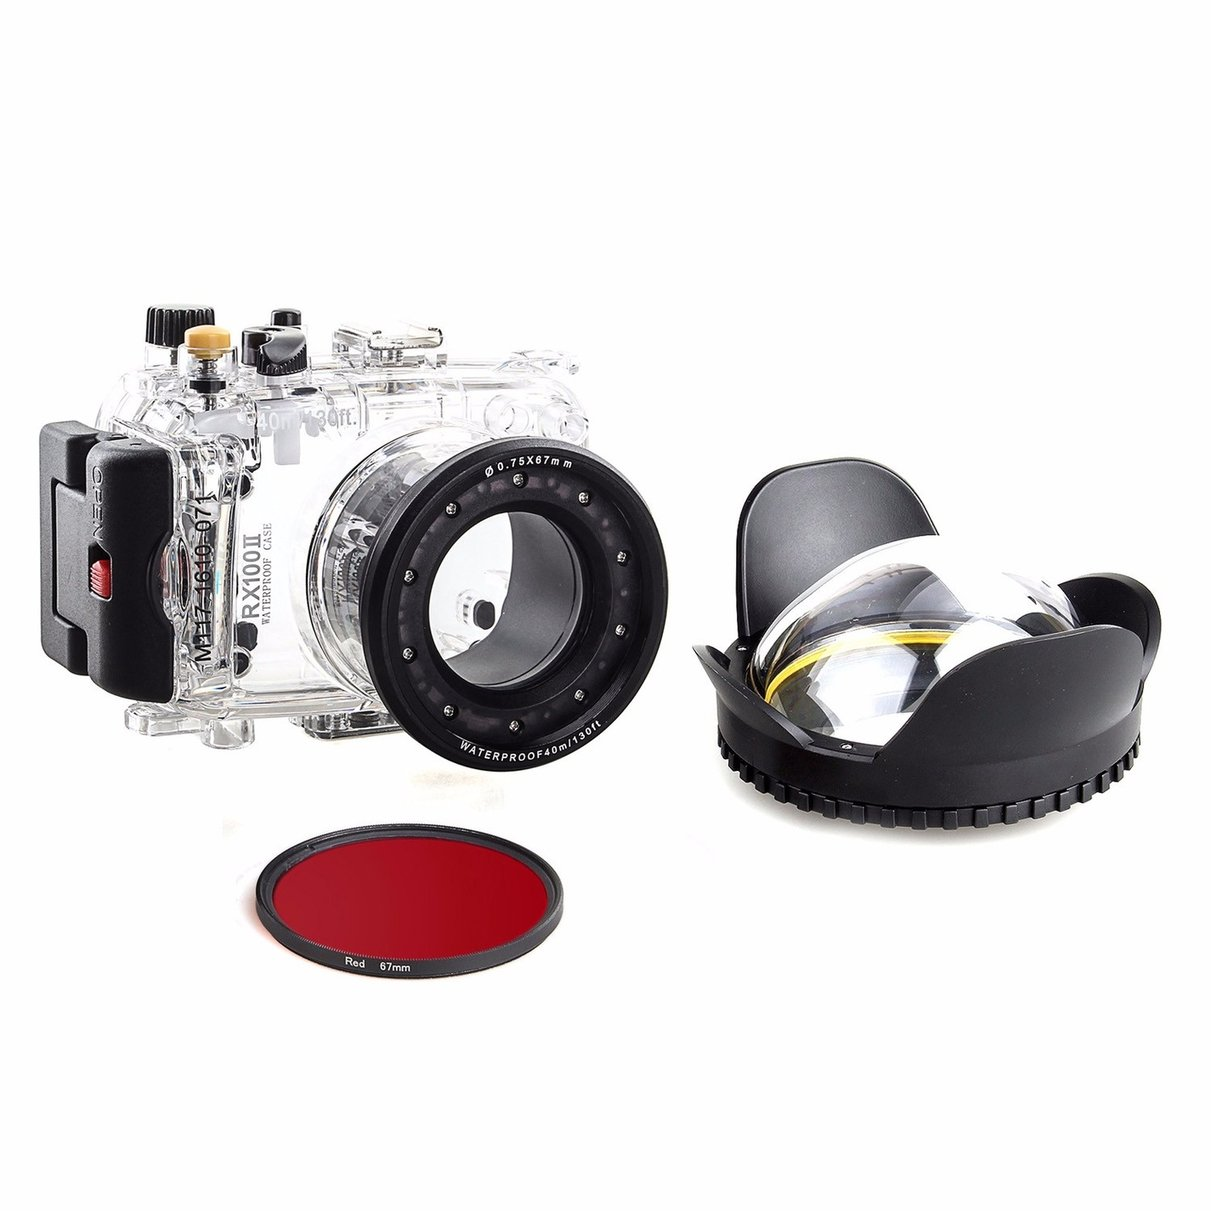 40m/130f Waterproof Underwater Camera Housing Diving Case for SONY DSC RX100 ii + Red Filter 67mm + 67mm Fisheye Lens китайский юань второго выпуска pmg 64